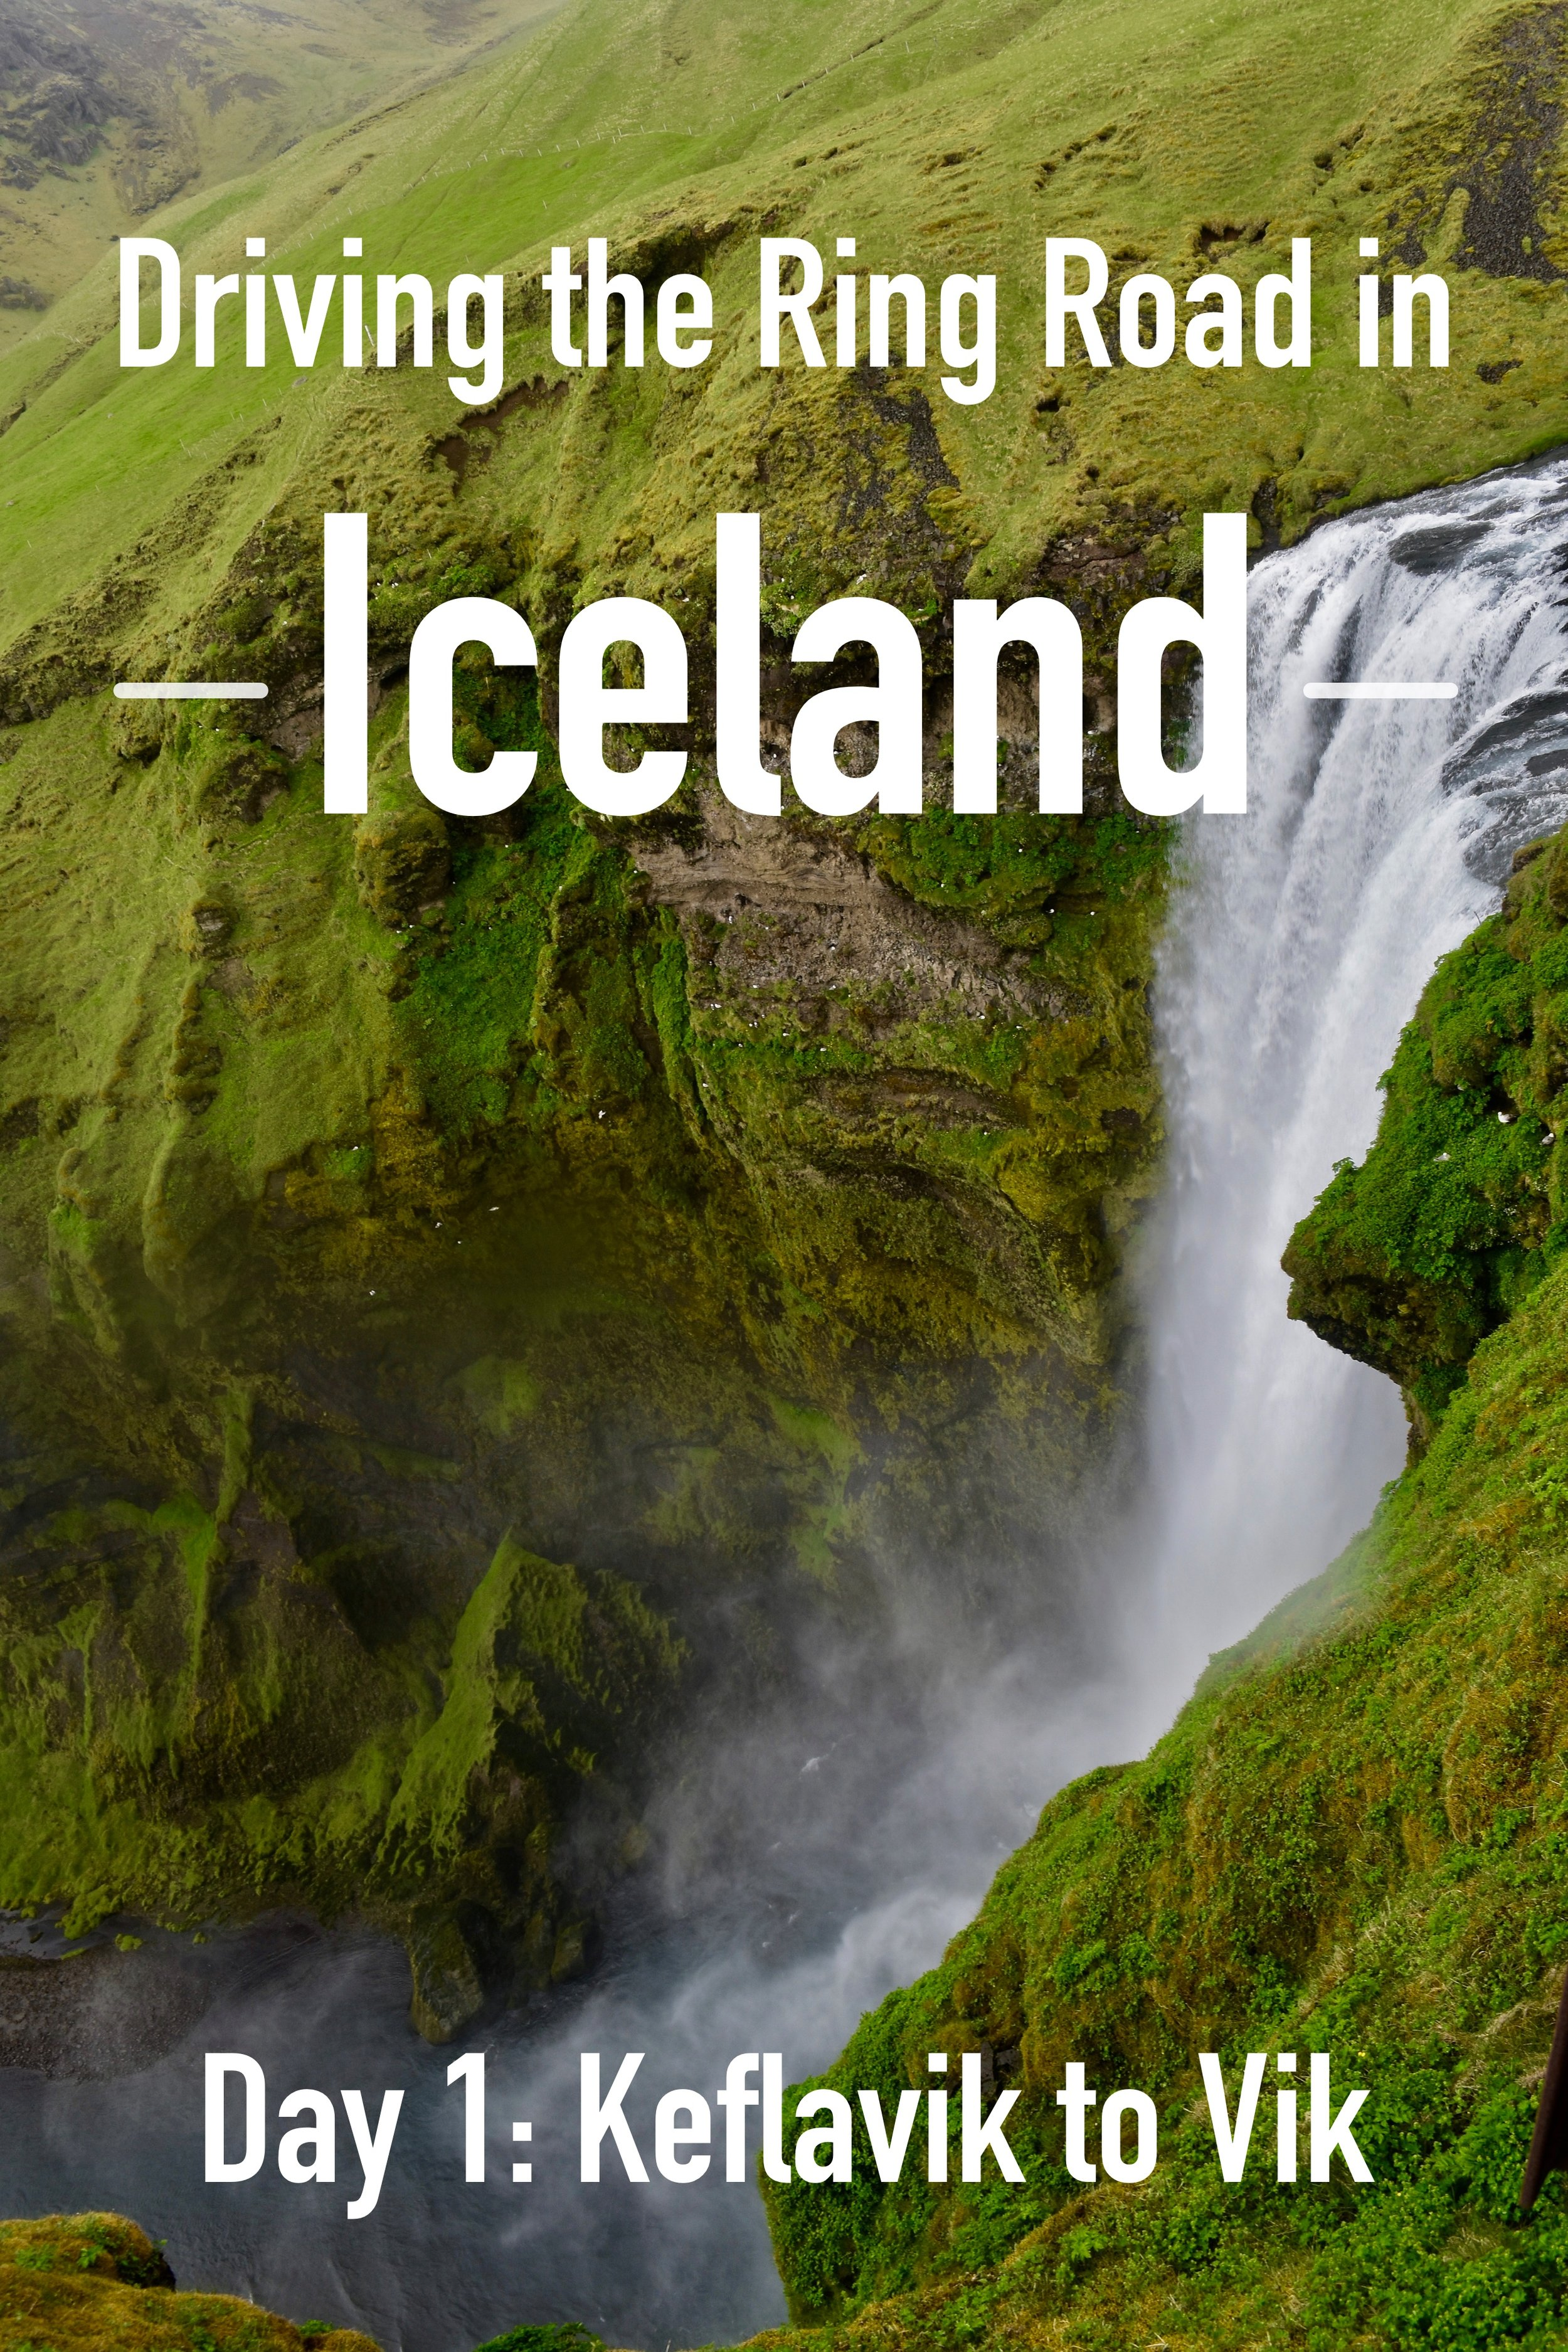 Our Experience on our First Day of Driving the Ring Road in Iceland.  We went from Keflavik Airport to Vik, visiting all of the major sights in between: Seljalandsfoss, Skogafoss, Dyrholaey, Gljufrabui, Vik, Vikurkirkja. #Iceland #RingRoad #Vik #Keflavik #RoadTrip #SouthCoast